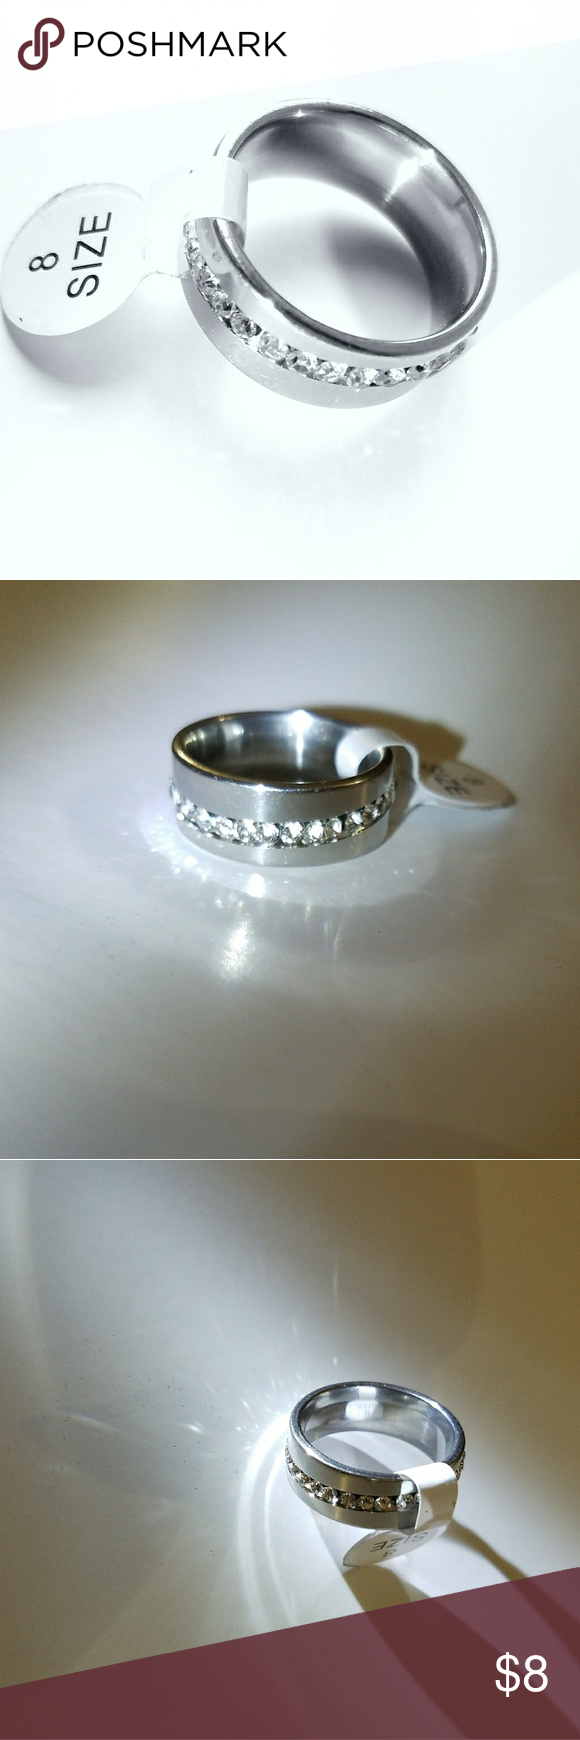 Stainless steel ring unisex band ring boutique band rings rust